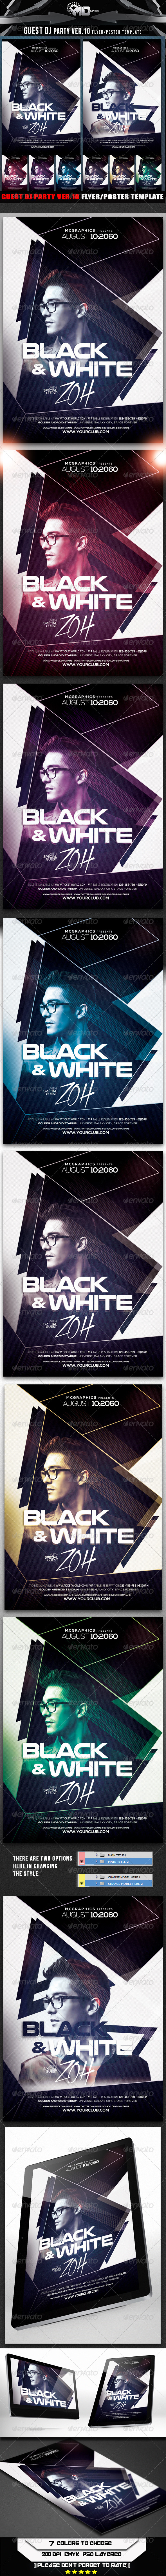 GraphicRiver Guest DJ Party Ver.10 Flyer Poster Template 8366251